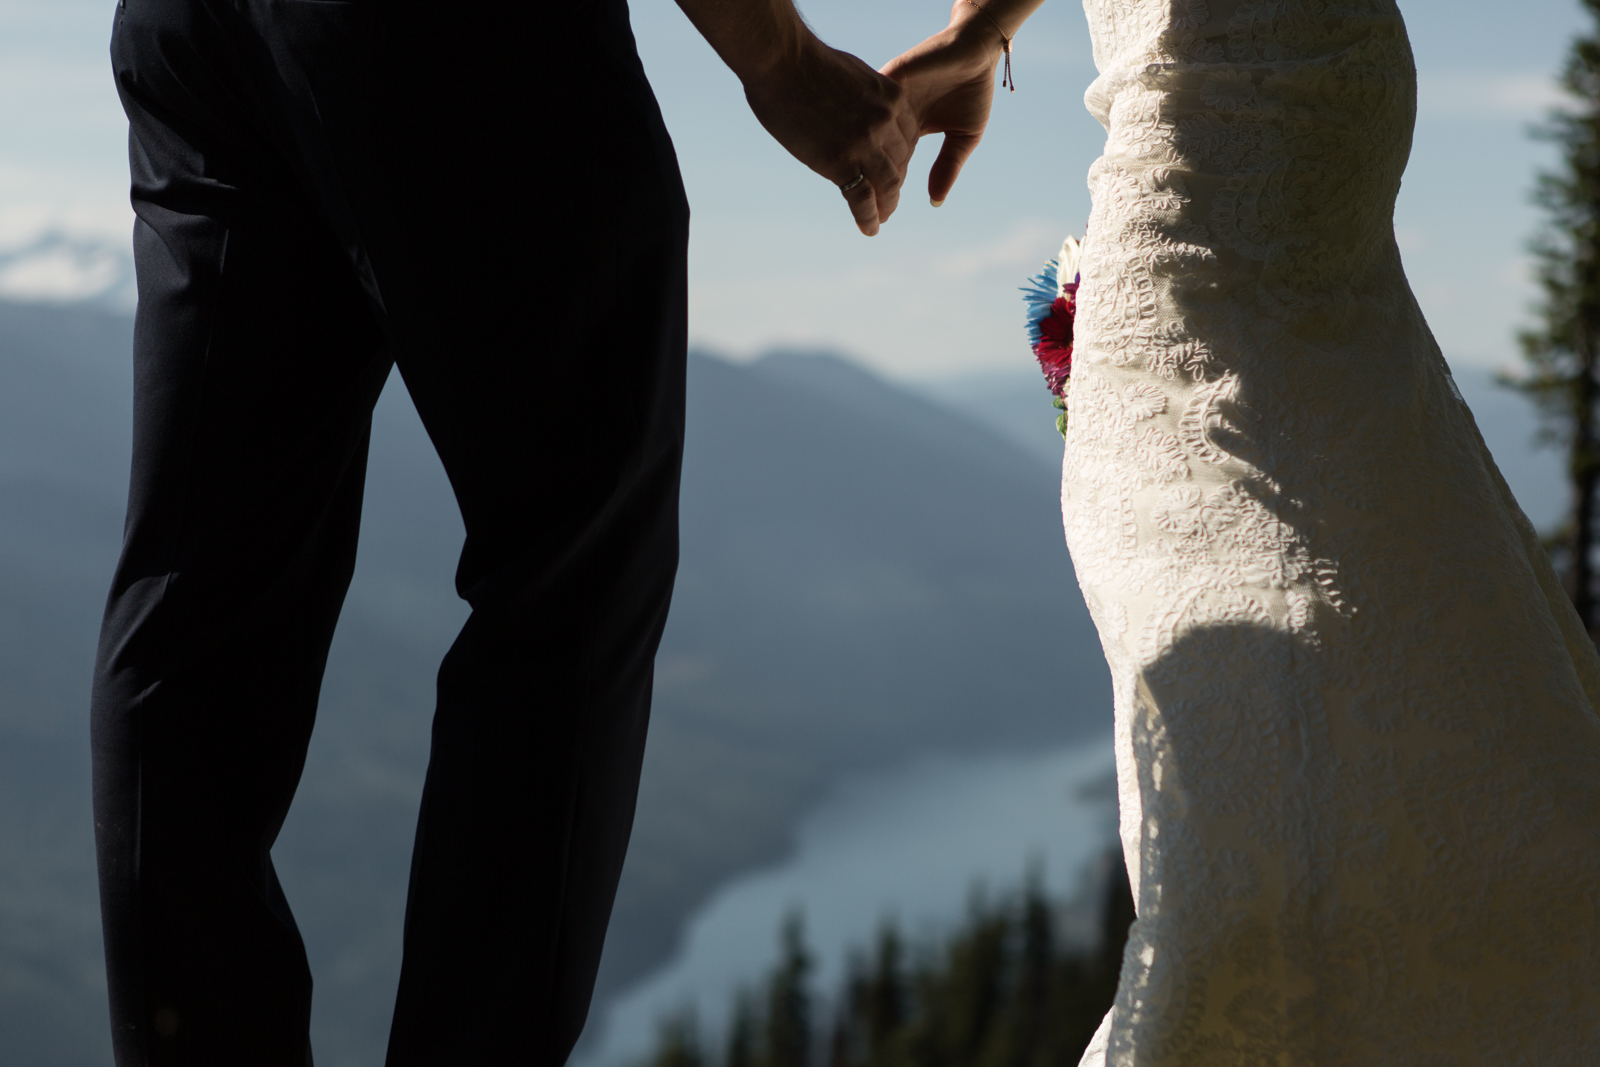 57Andrew_Pavlidis_Photography_Jess_and_Tristan_Revelstoke_Elopement_Calgary_Wedding_Photographer-8771